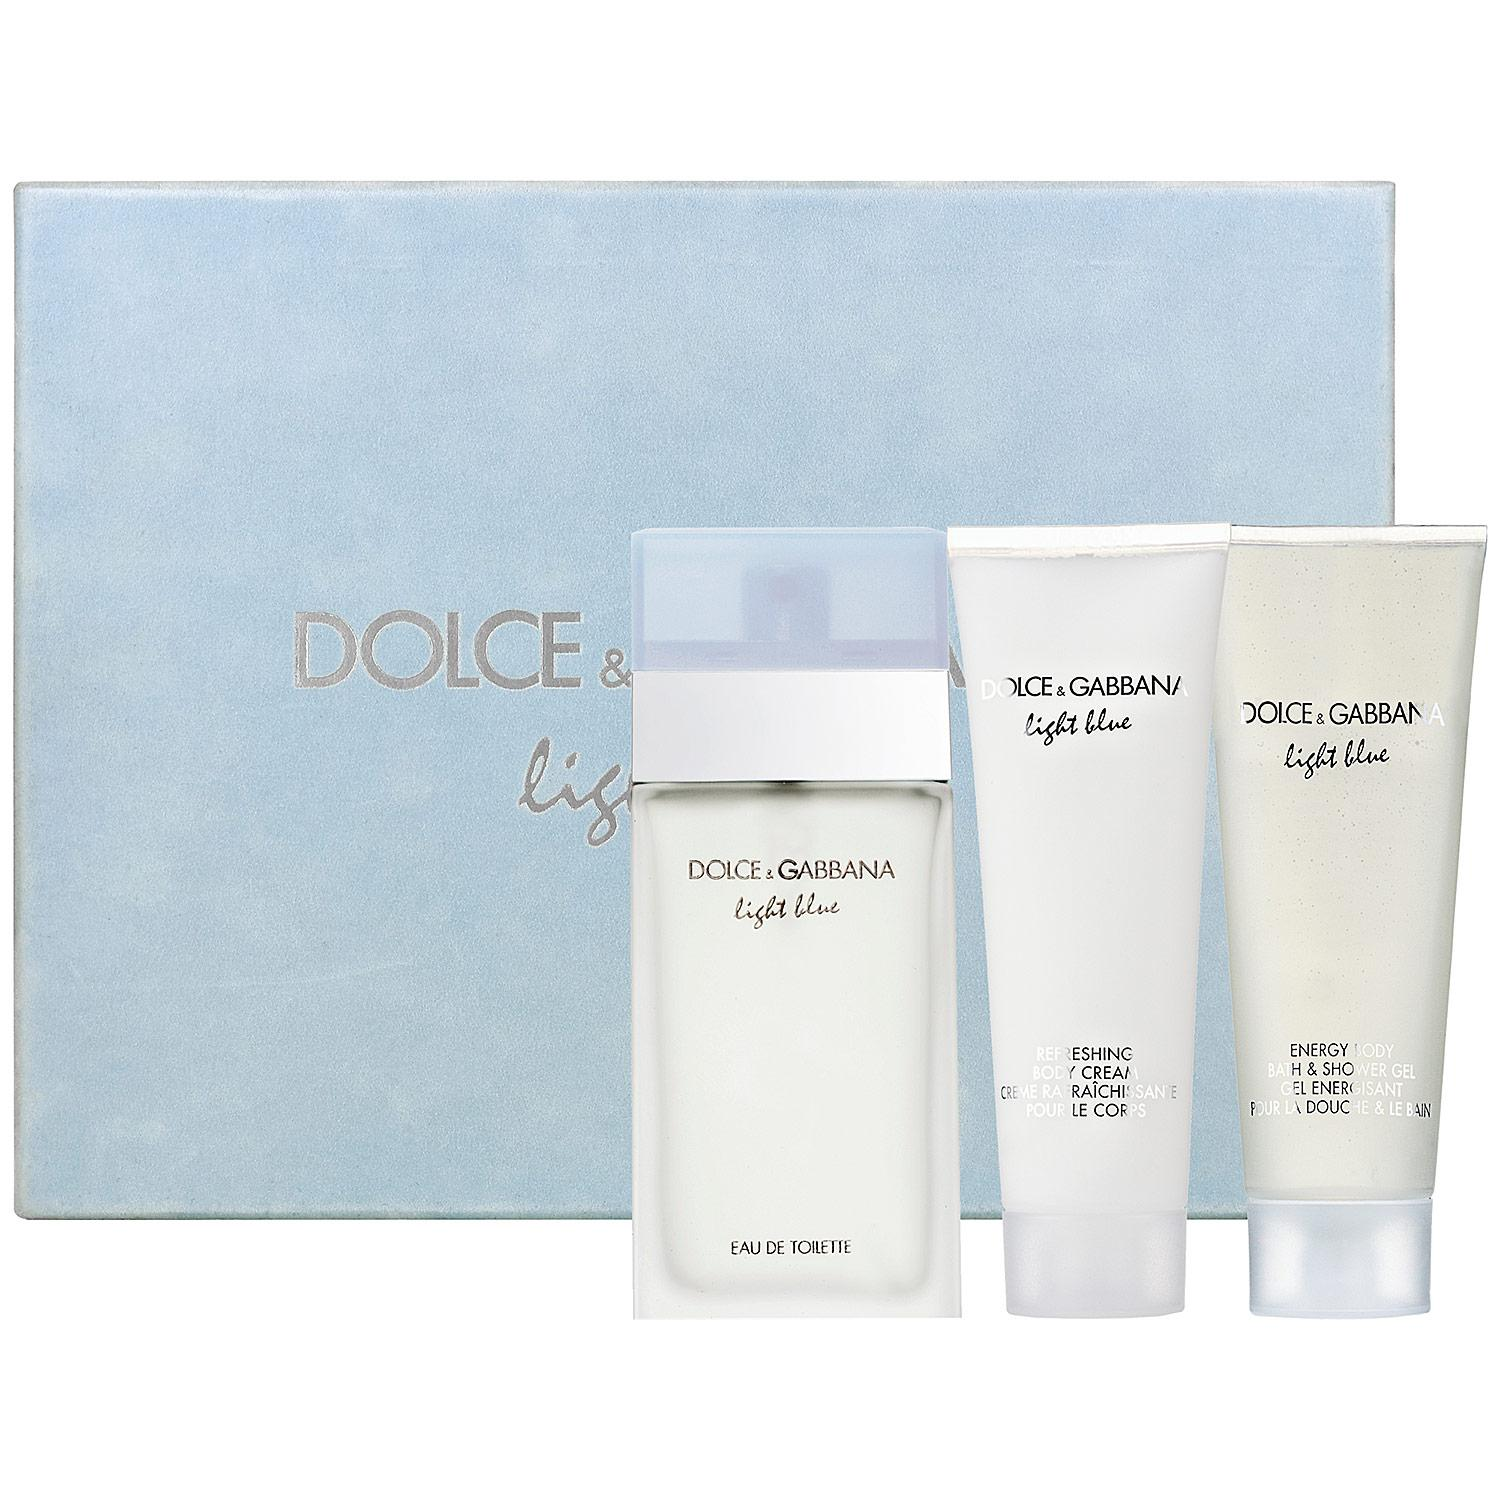 Light Blue Gift Set